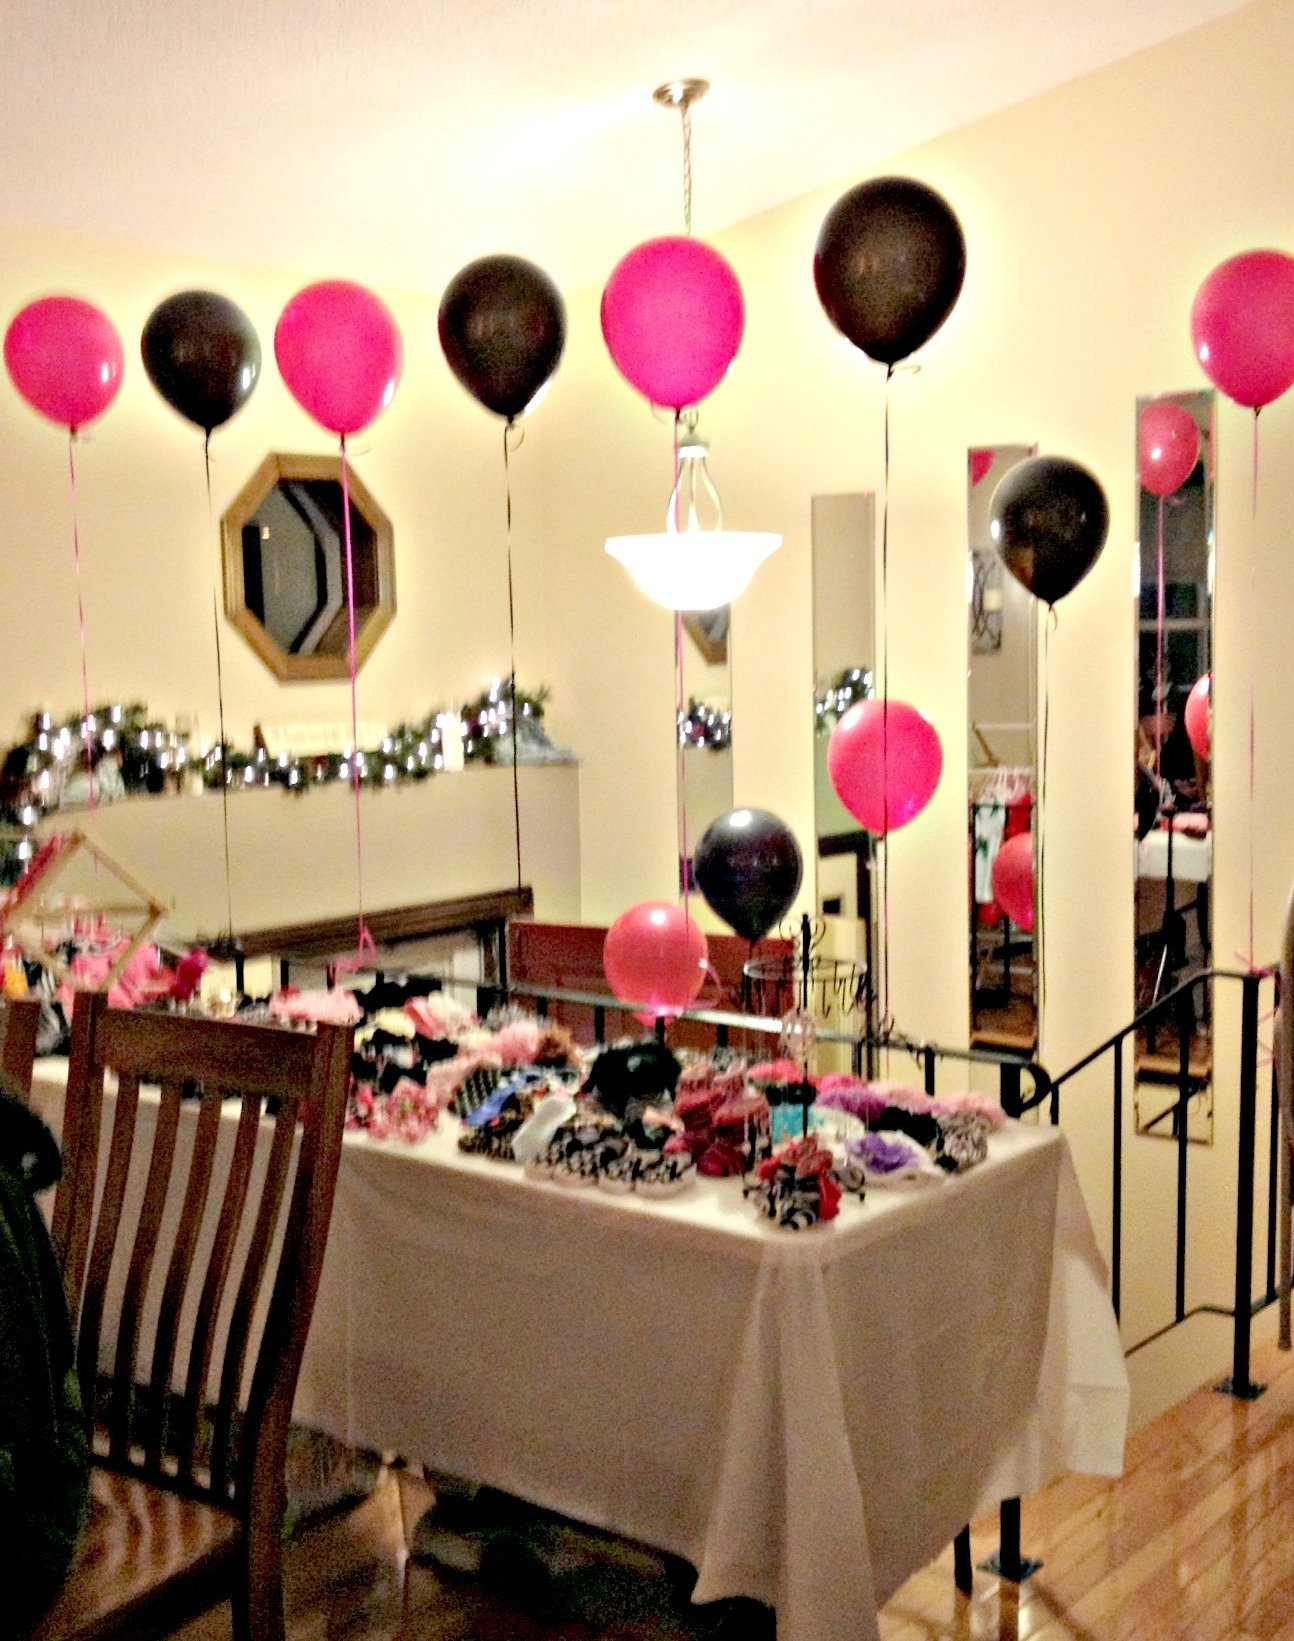 10 Perfect Pink And Black Baby Shower Ideas pink black baby shower themes e280a2 baby showers ideas 2021